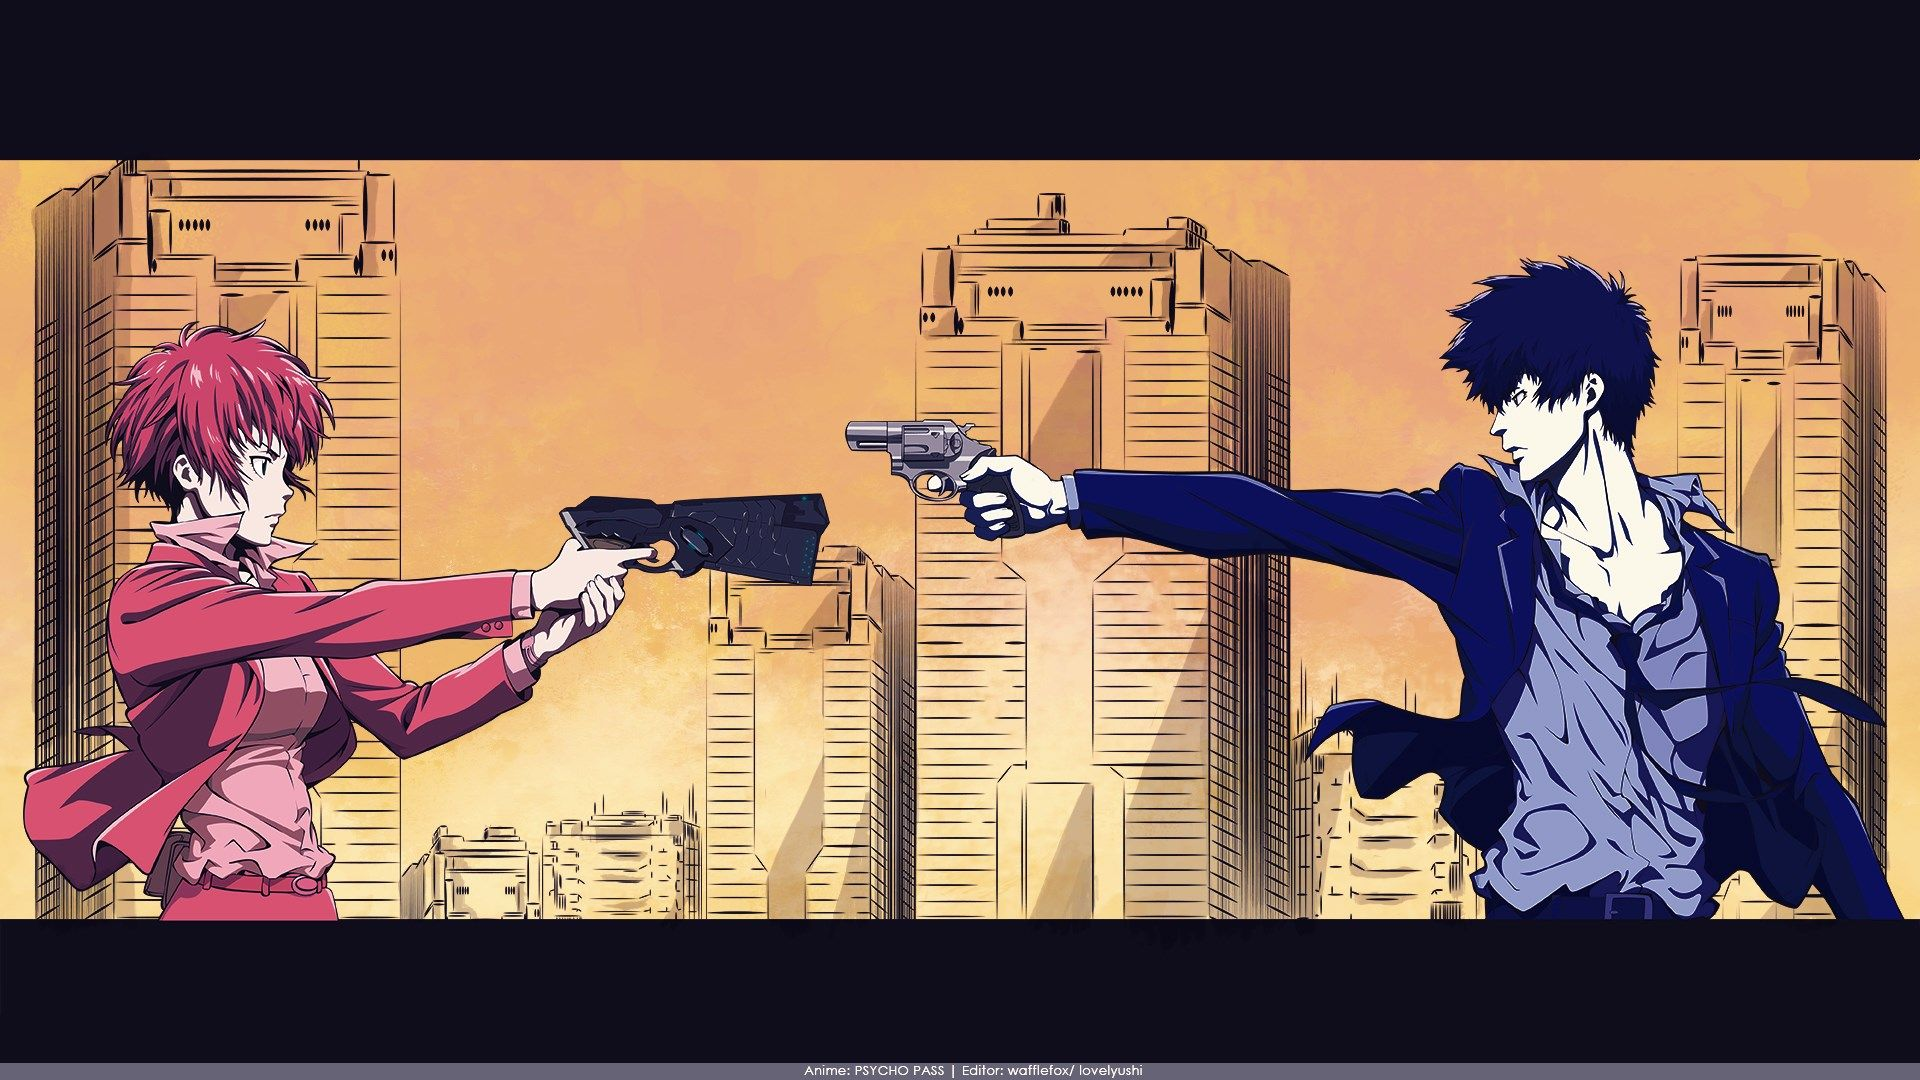 Psycho Pass Wallpaper Collection 1920x1080 Psycho Pass Anime Psychos